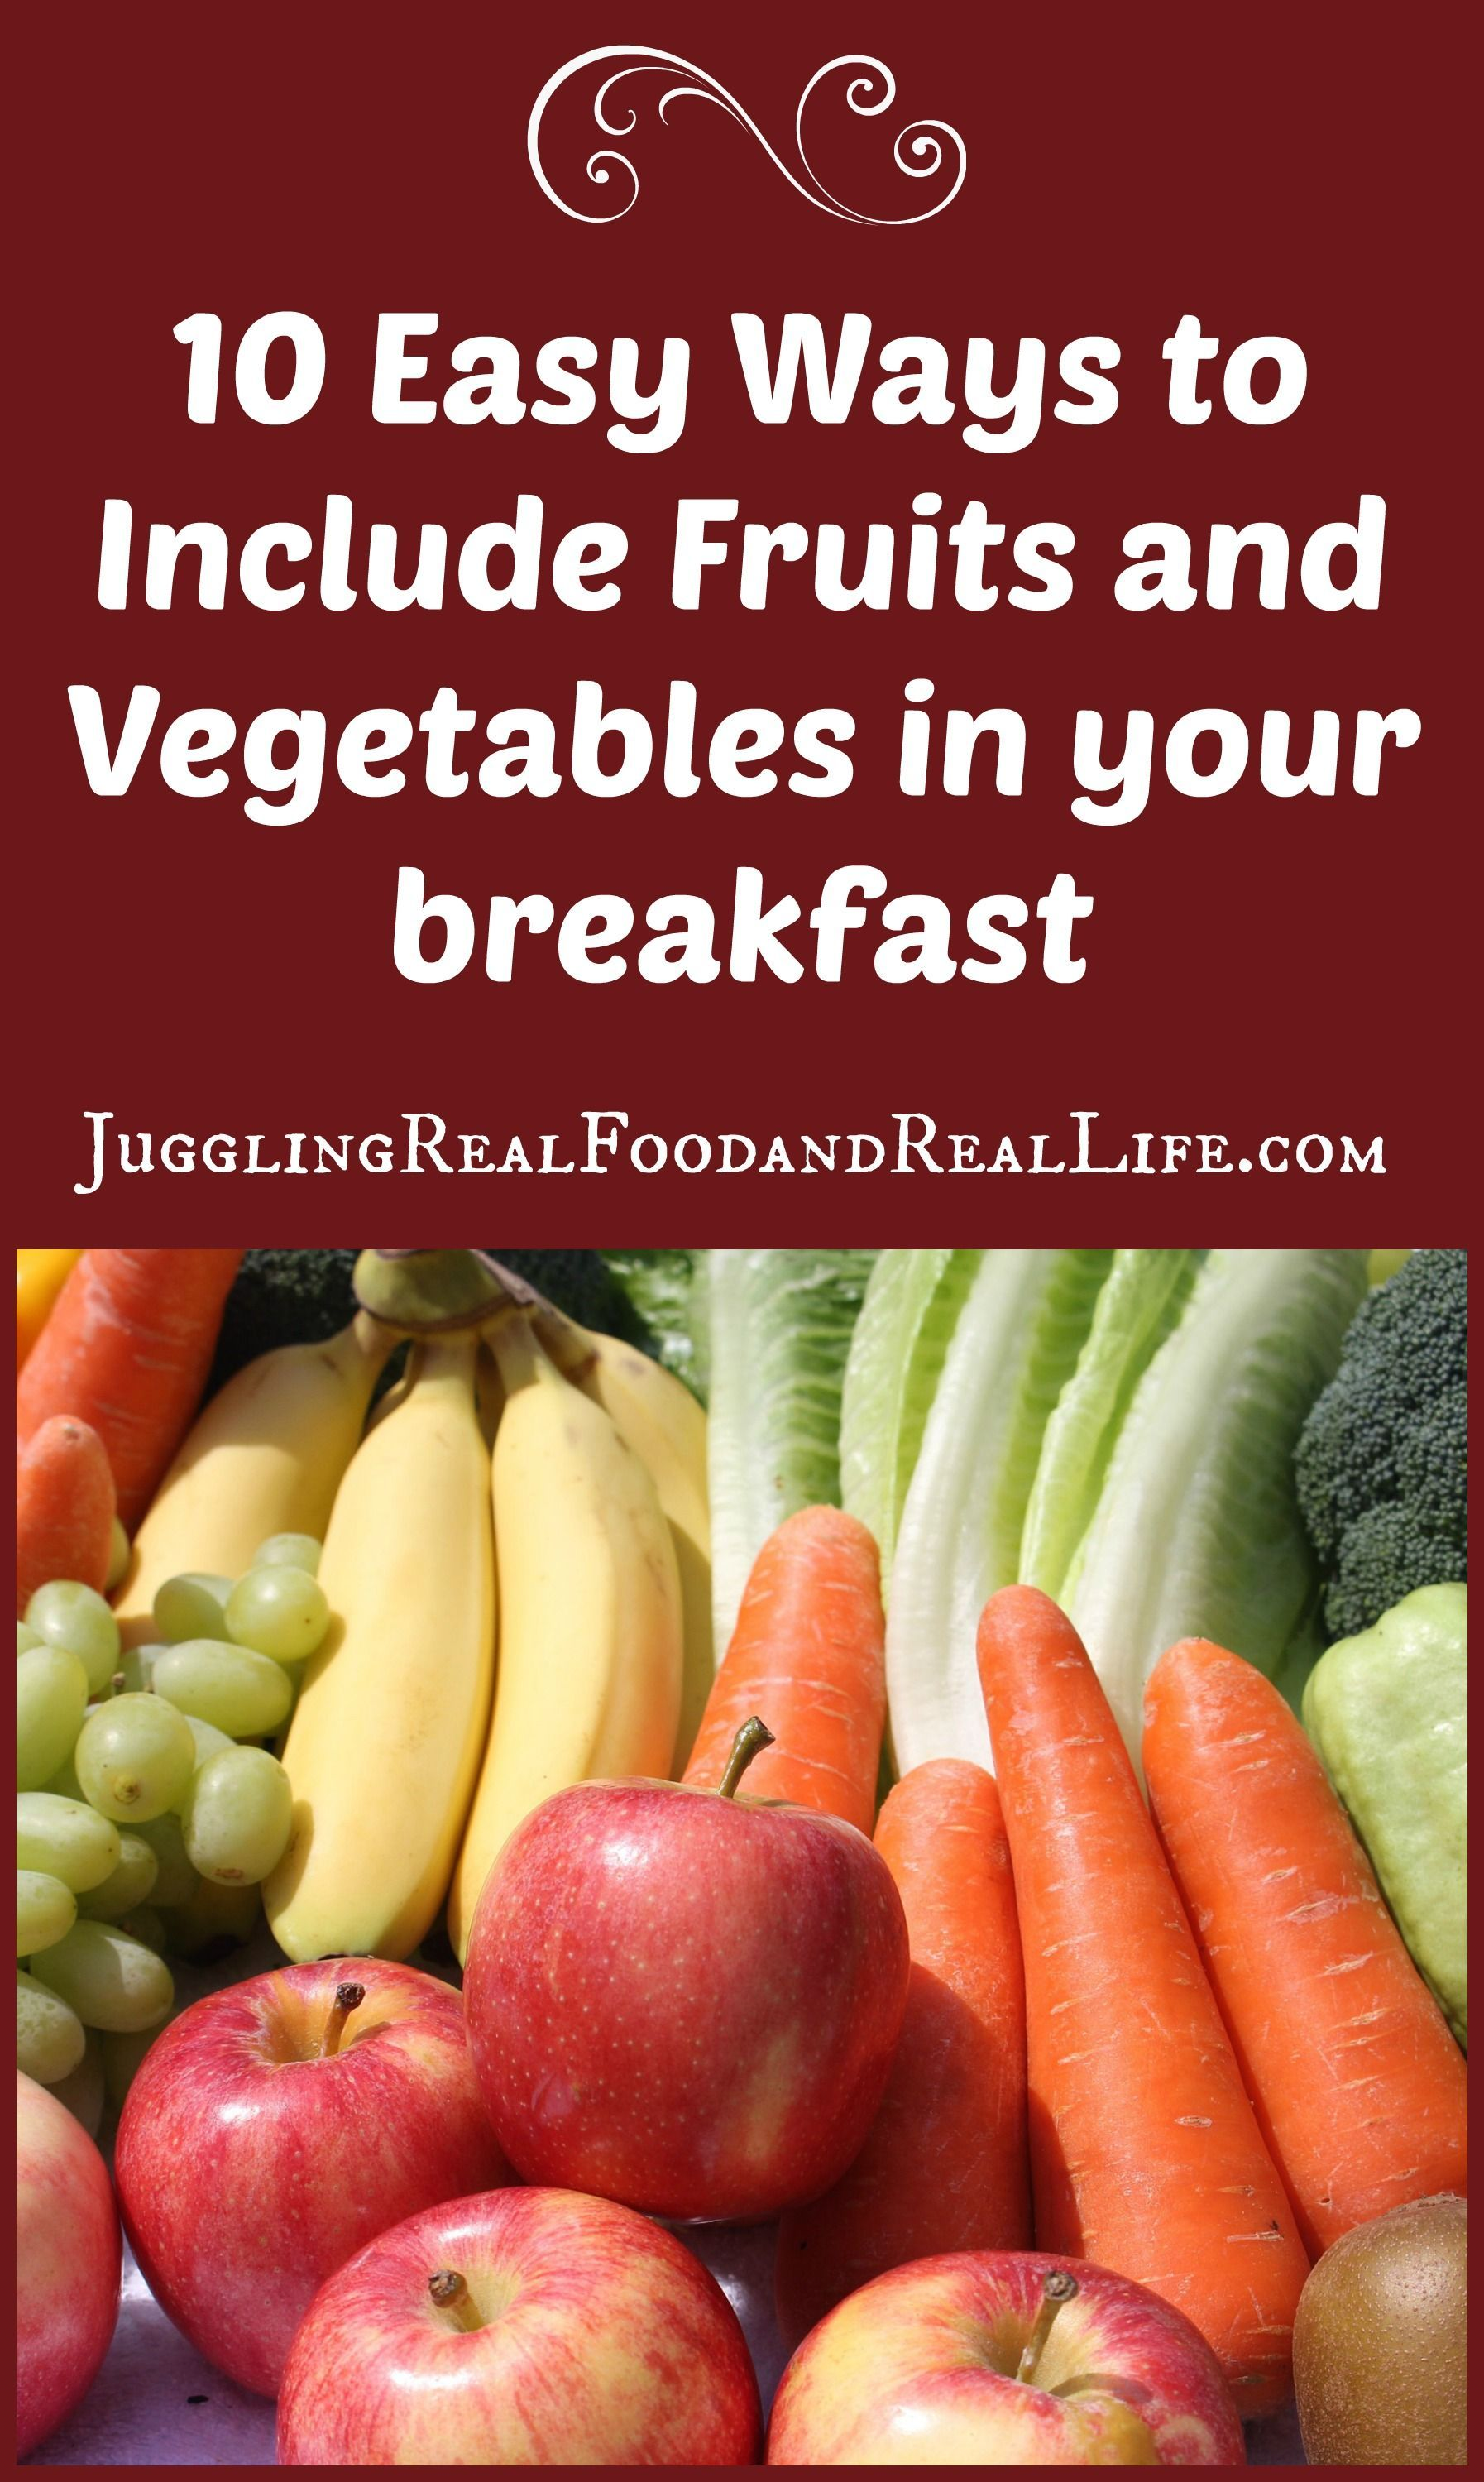 Vegetables Breakfast According Question Dietary Include Healthy Website Veggies Harvard Eating Enough F Real Food Recipes Fruits And Veggies Fruit